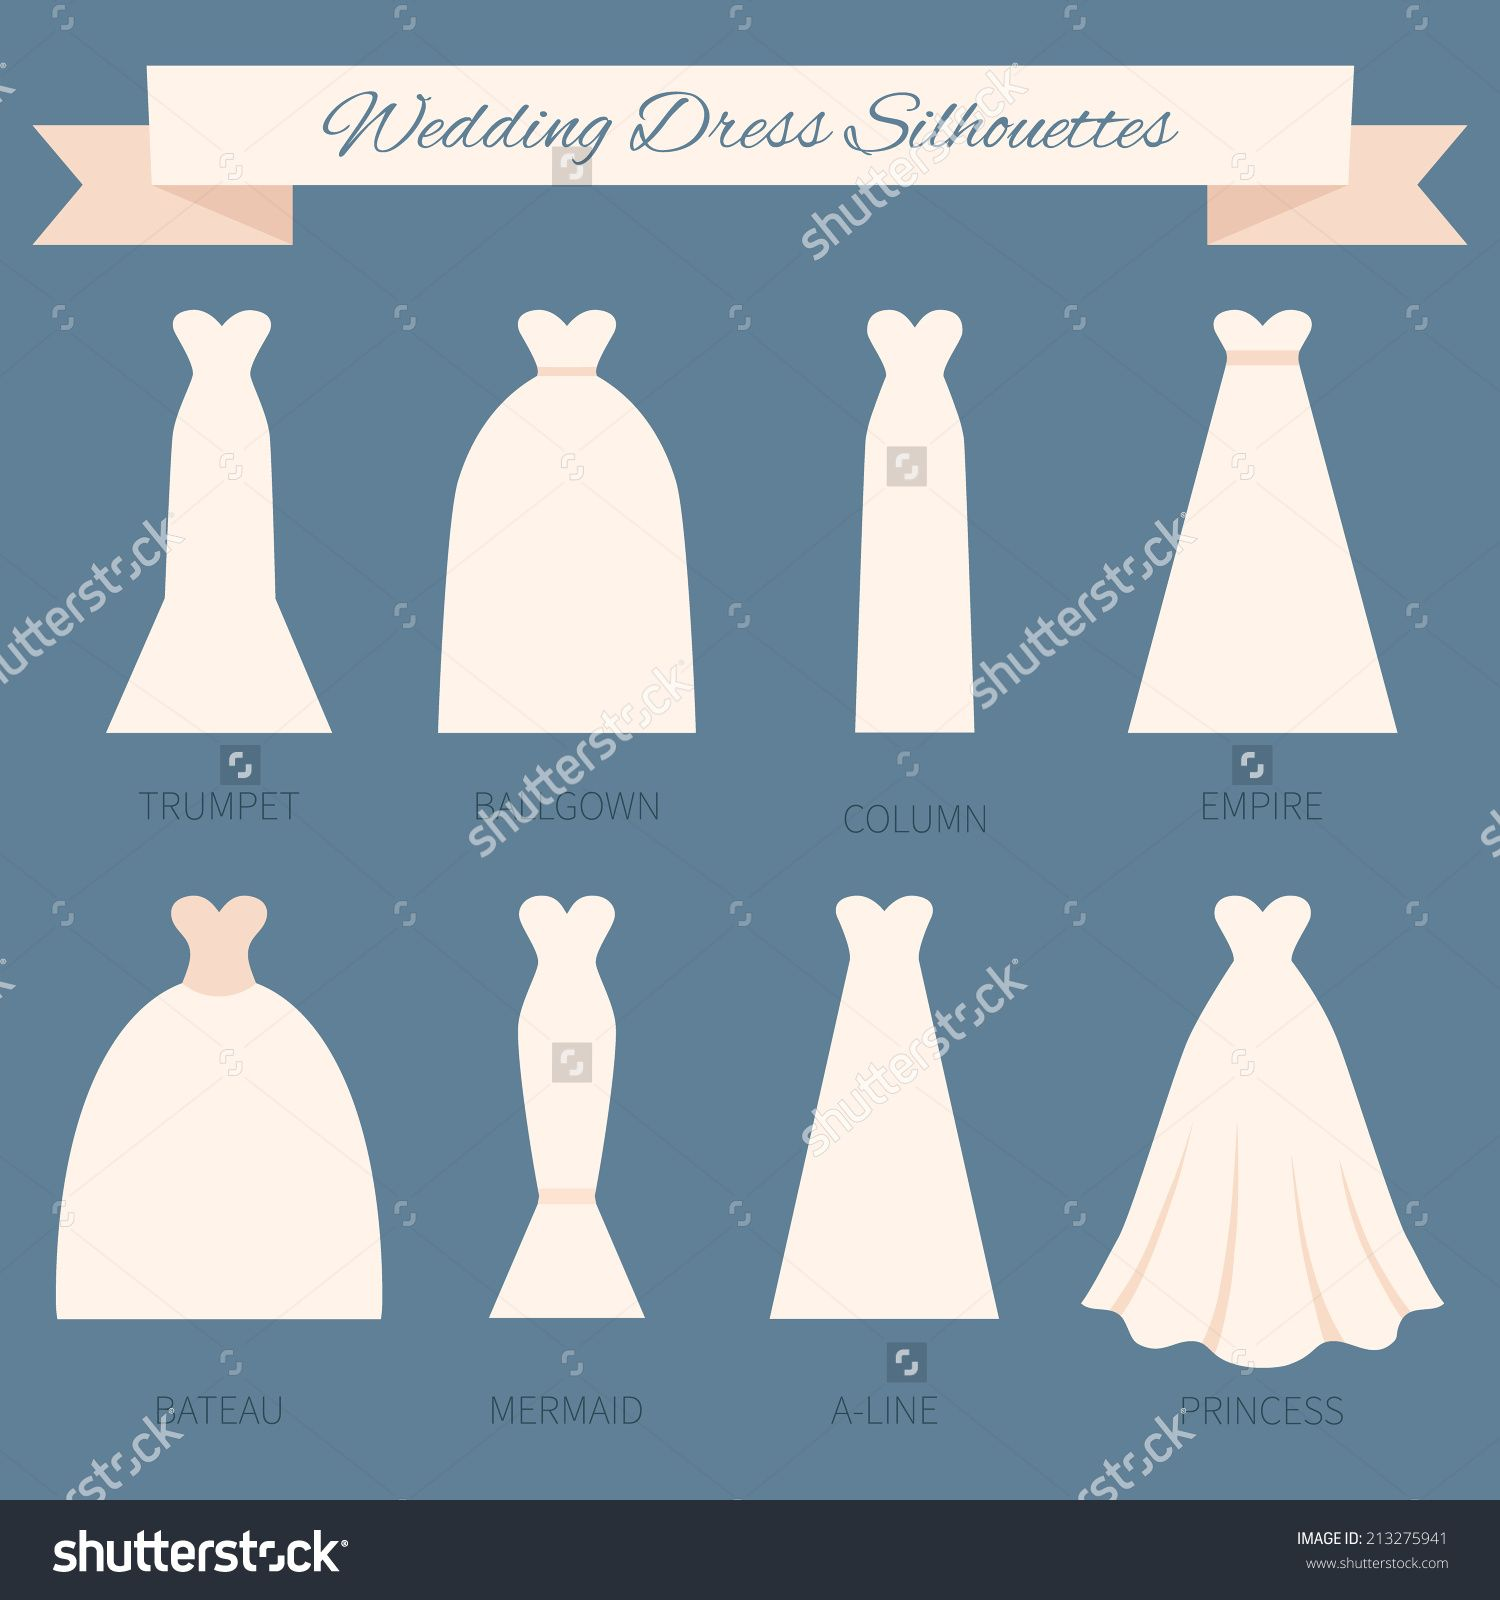 How to select a wedding dress style good style dresses pinterest